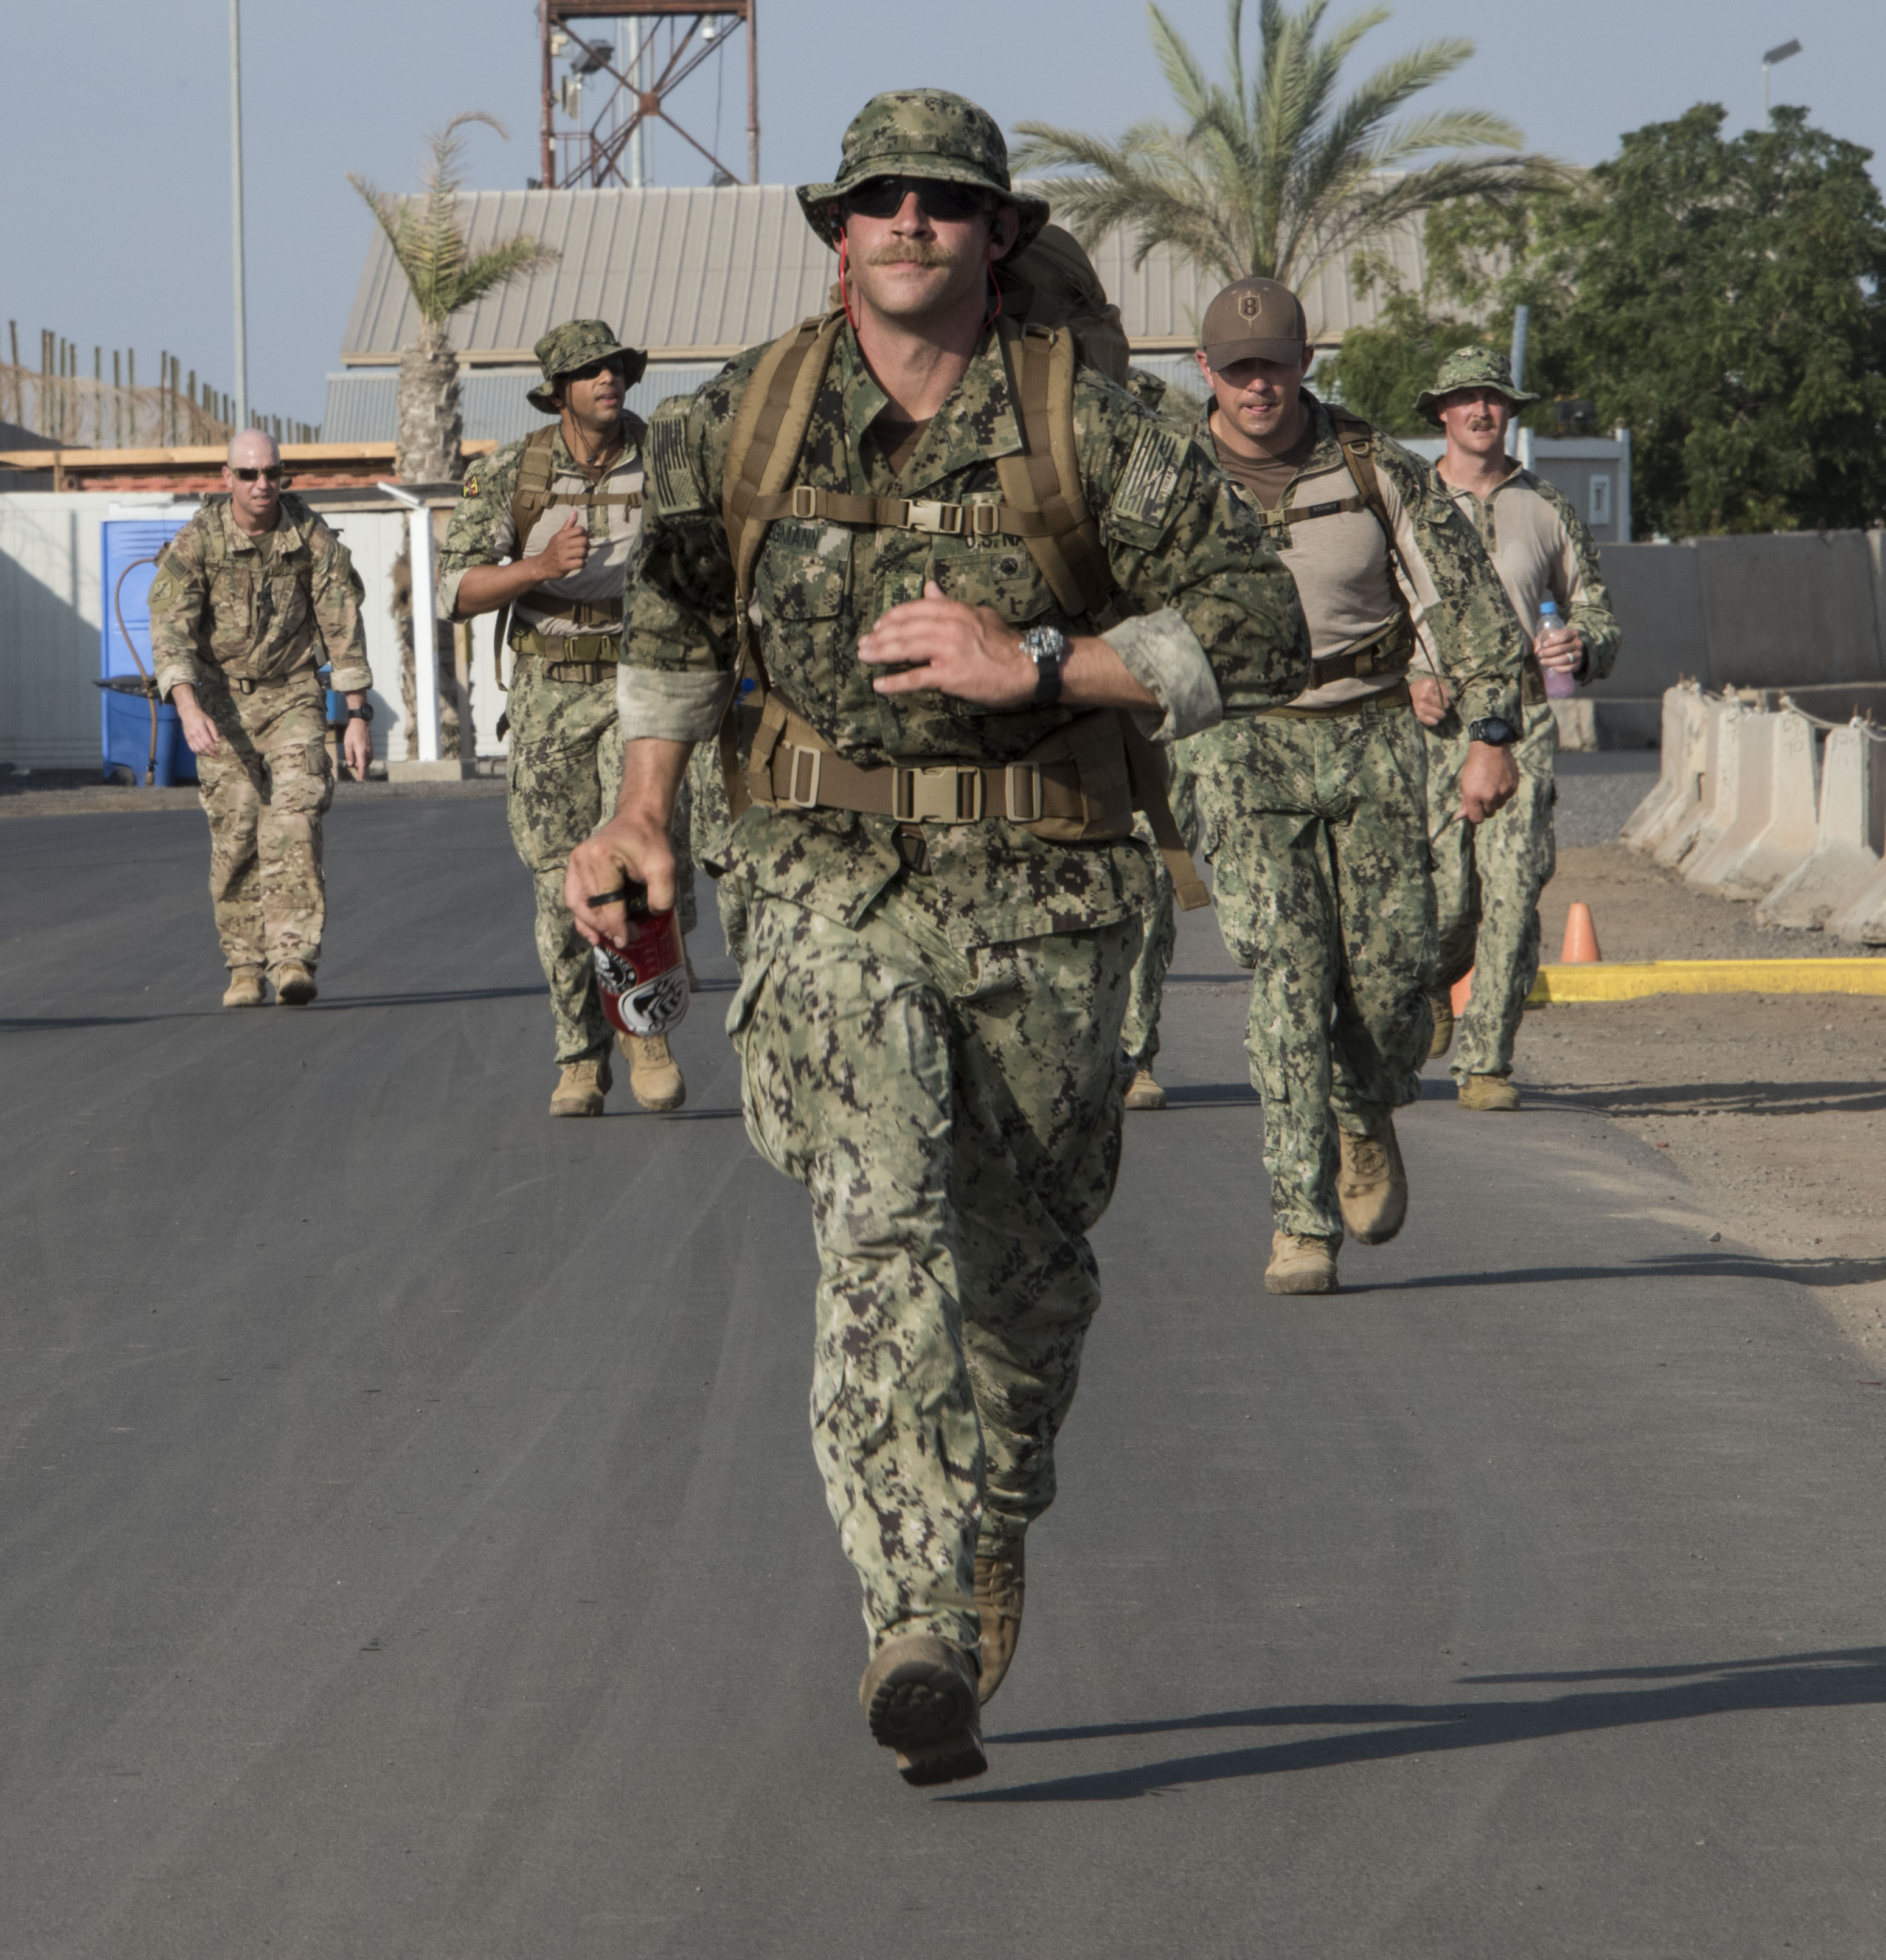 U.S. service members assigned to Combined Joint Task Force-Horn of Africa complete a ruck march as part of the competition to earn the German Armed Forces Proficiency Badge (GAFPB), a decoration of the Armed Forces of the Federal Republic of Germany, at Camp Lemonnier, Djibouti, Nov. 30, 2017. Competitors must complete a physical fitness test, uniformed swim, weapons qualification, ruck march, first aid course and chemical warfare course to be awarded the GAFPB, one of the few foreign allied military awards that U.S. service members are authorized to wear. (U.S. Air National Guard photo by Staff Sgt. Allyson L. Manners)